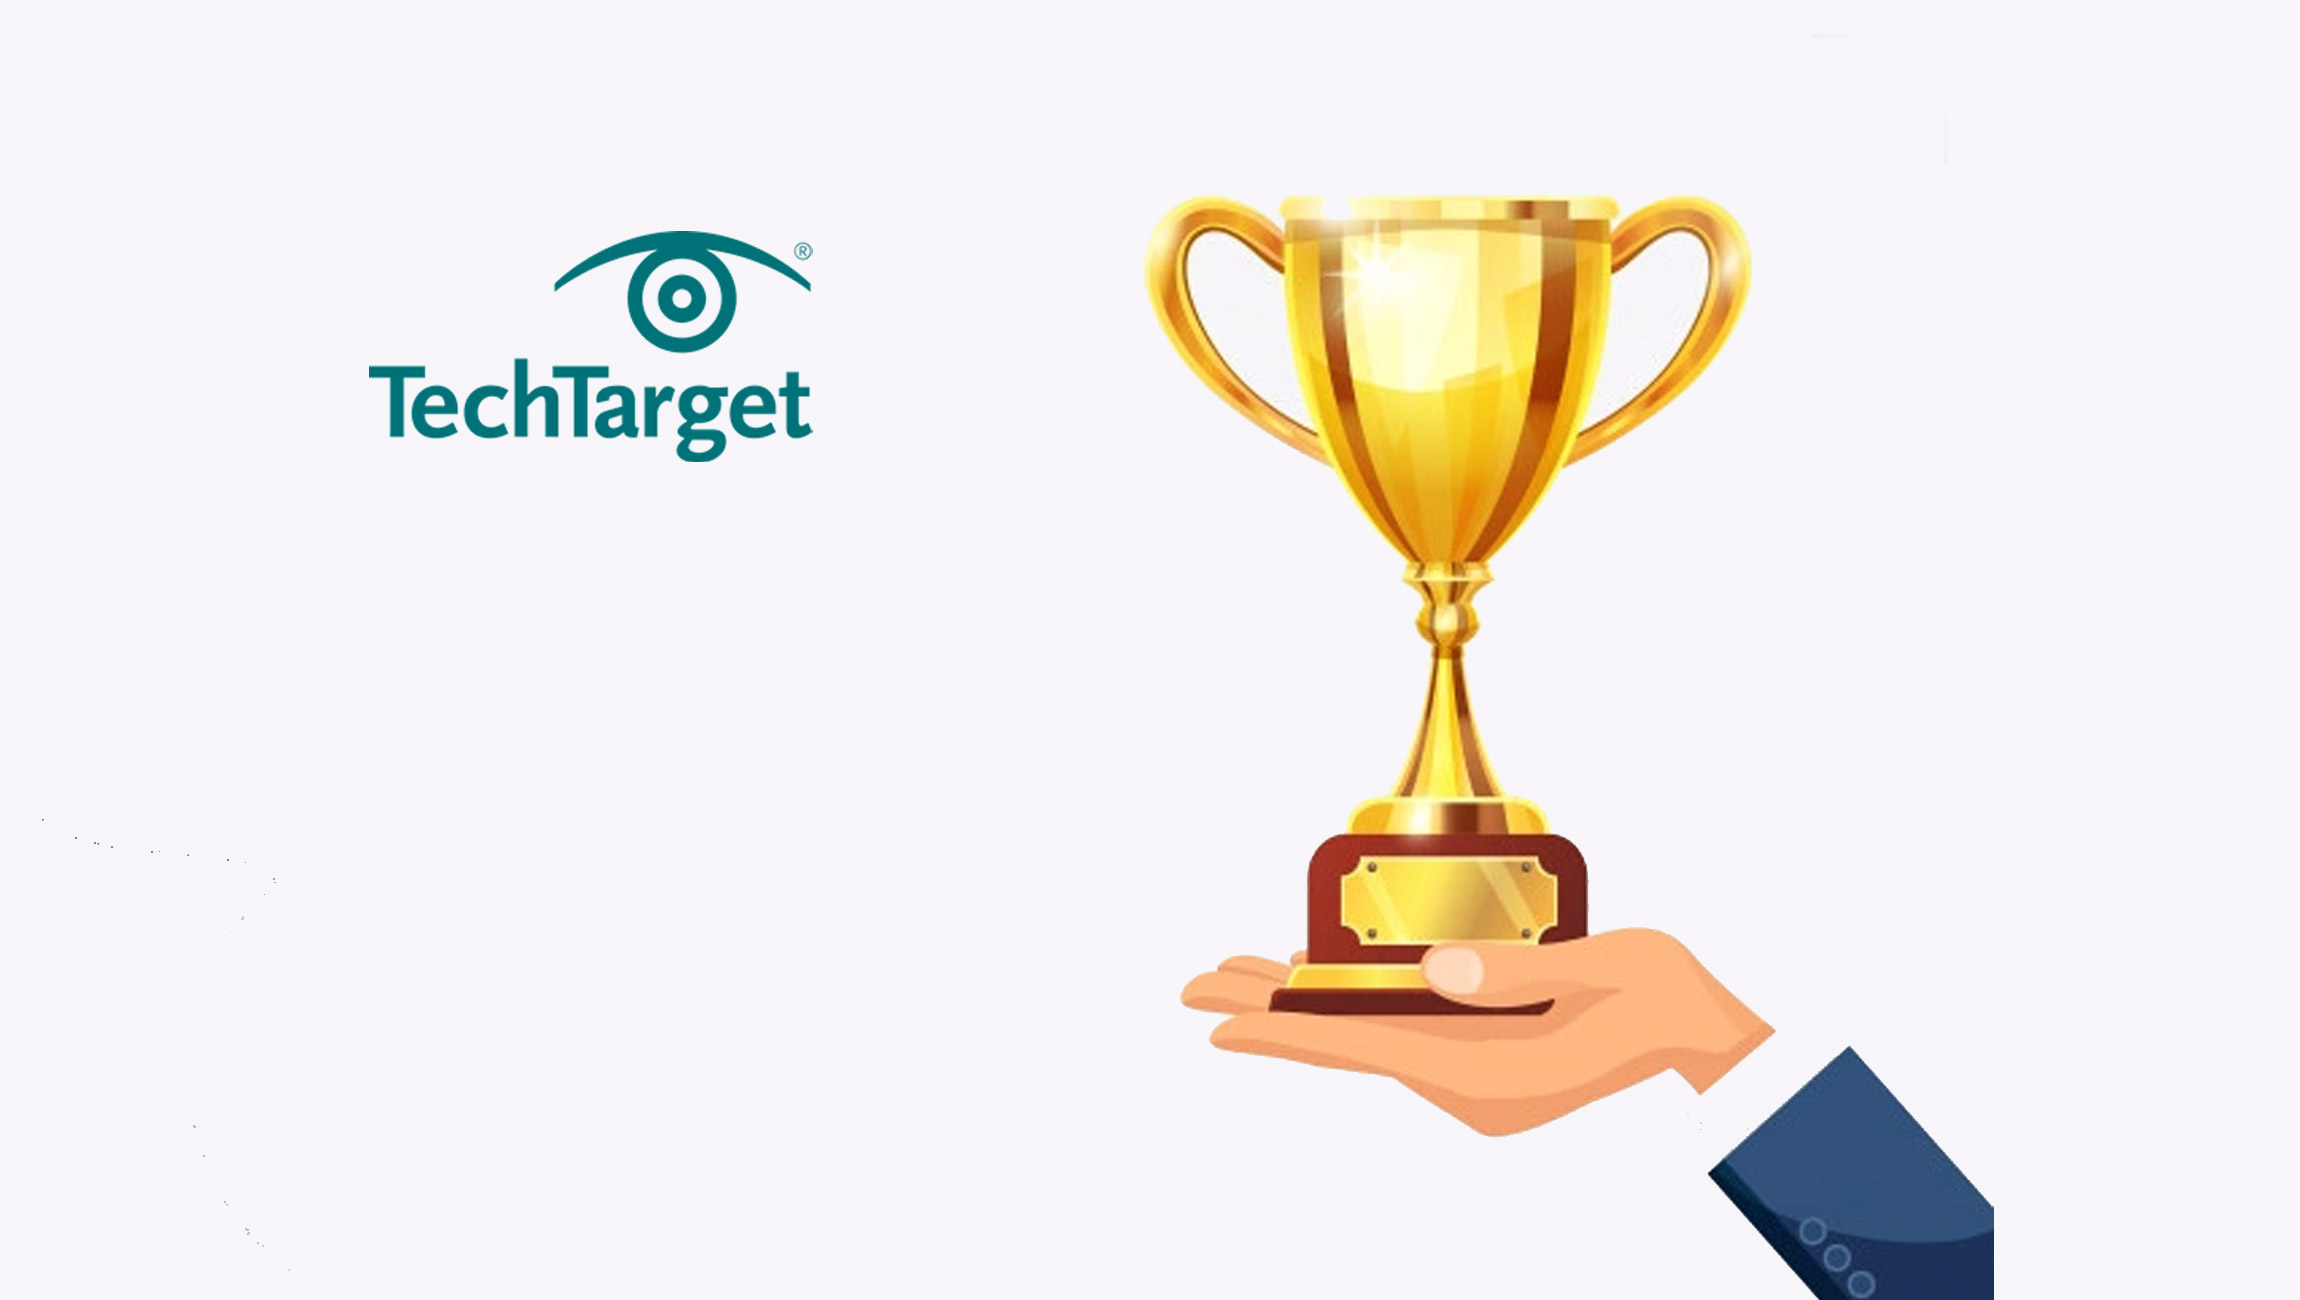 TechTarget-Archer-Awards-Honor-Leaders-in-B2B-Tech-Marketing-and-Sales-in-APAC